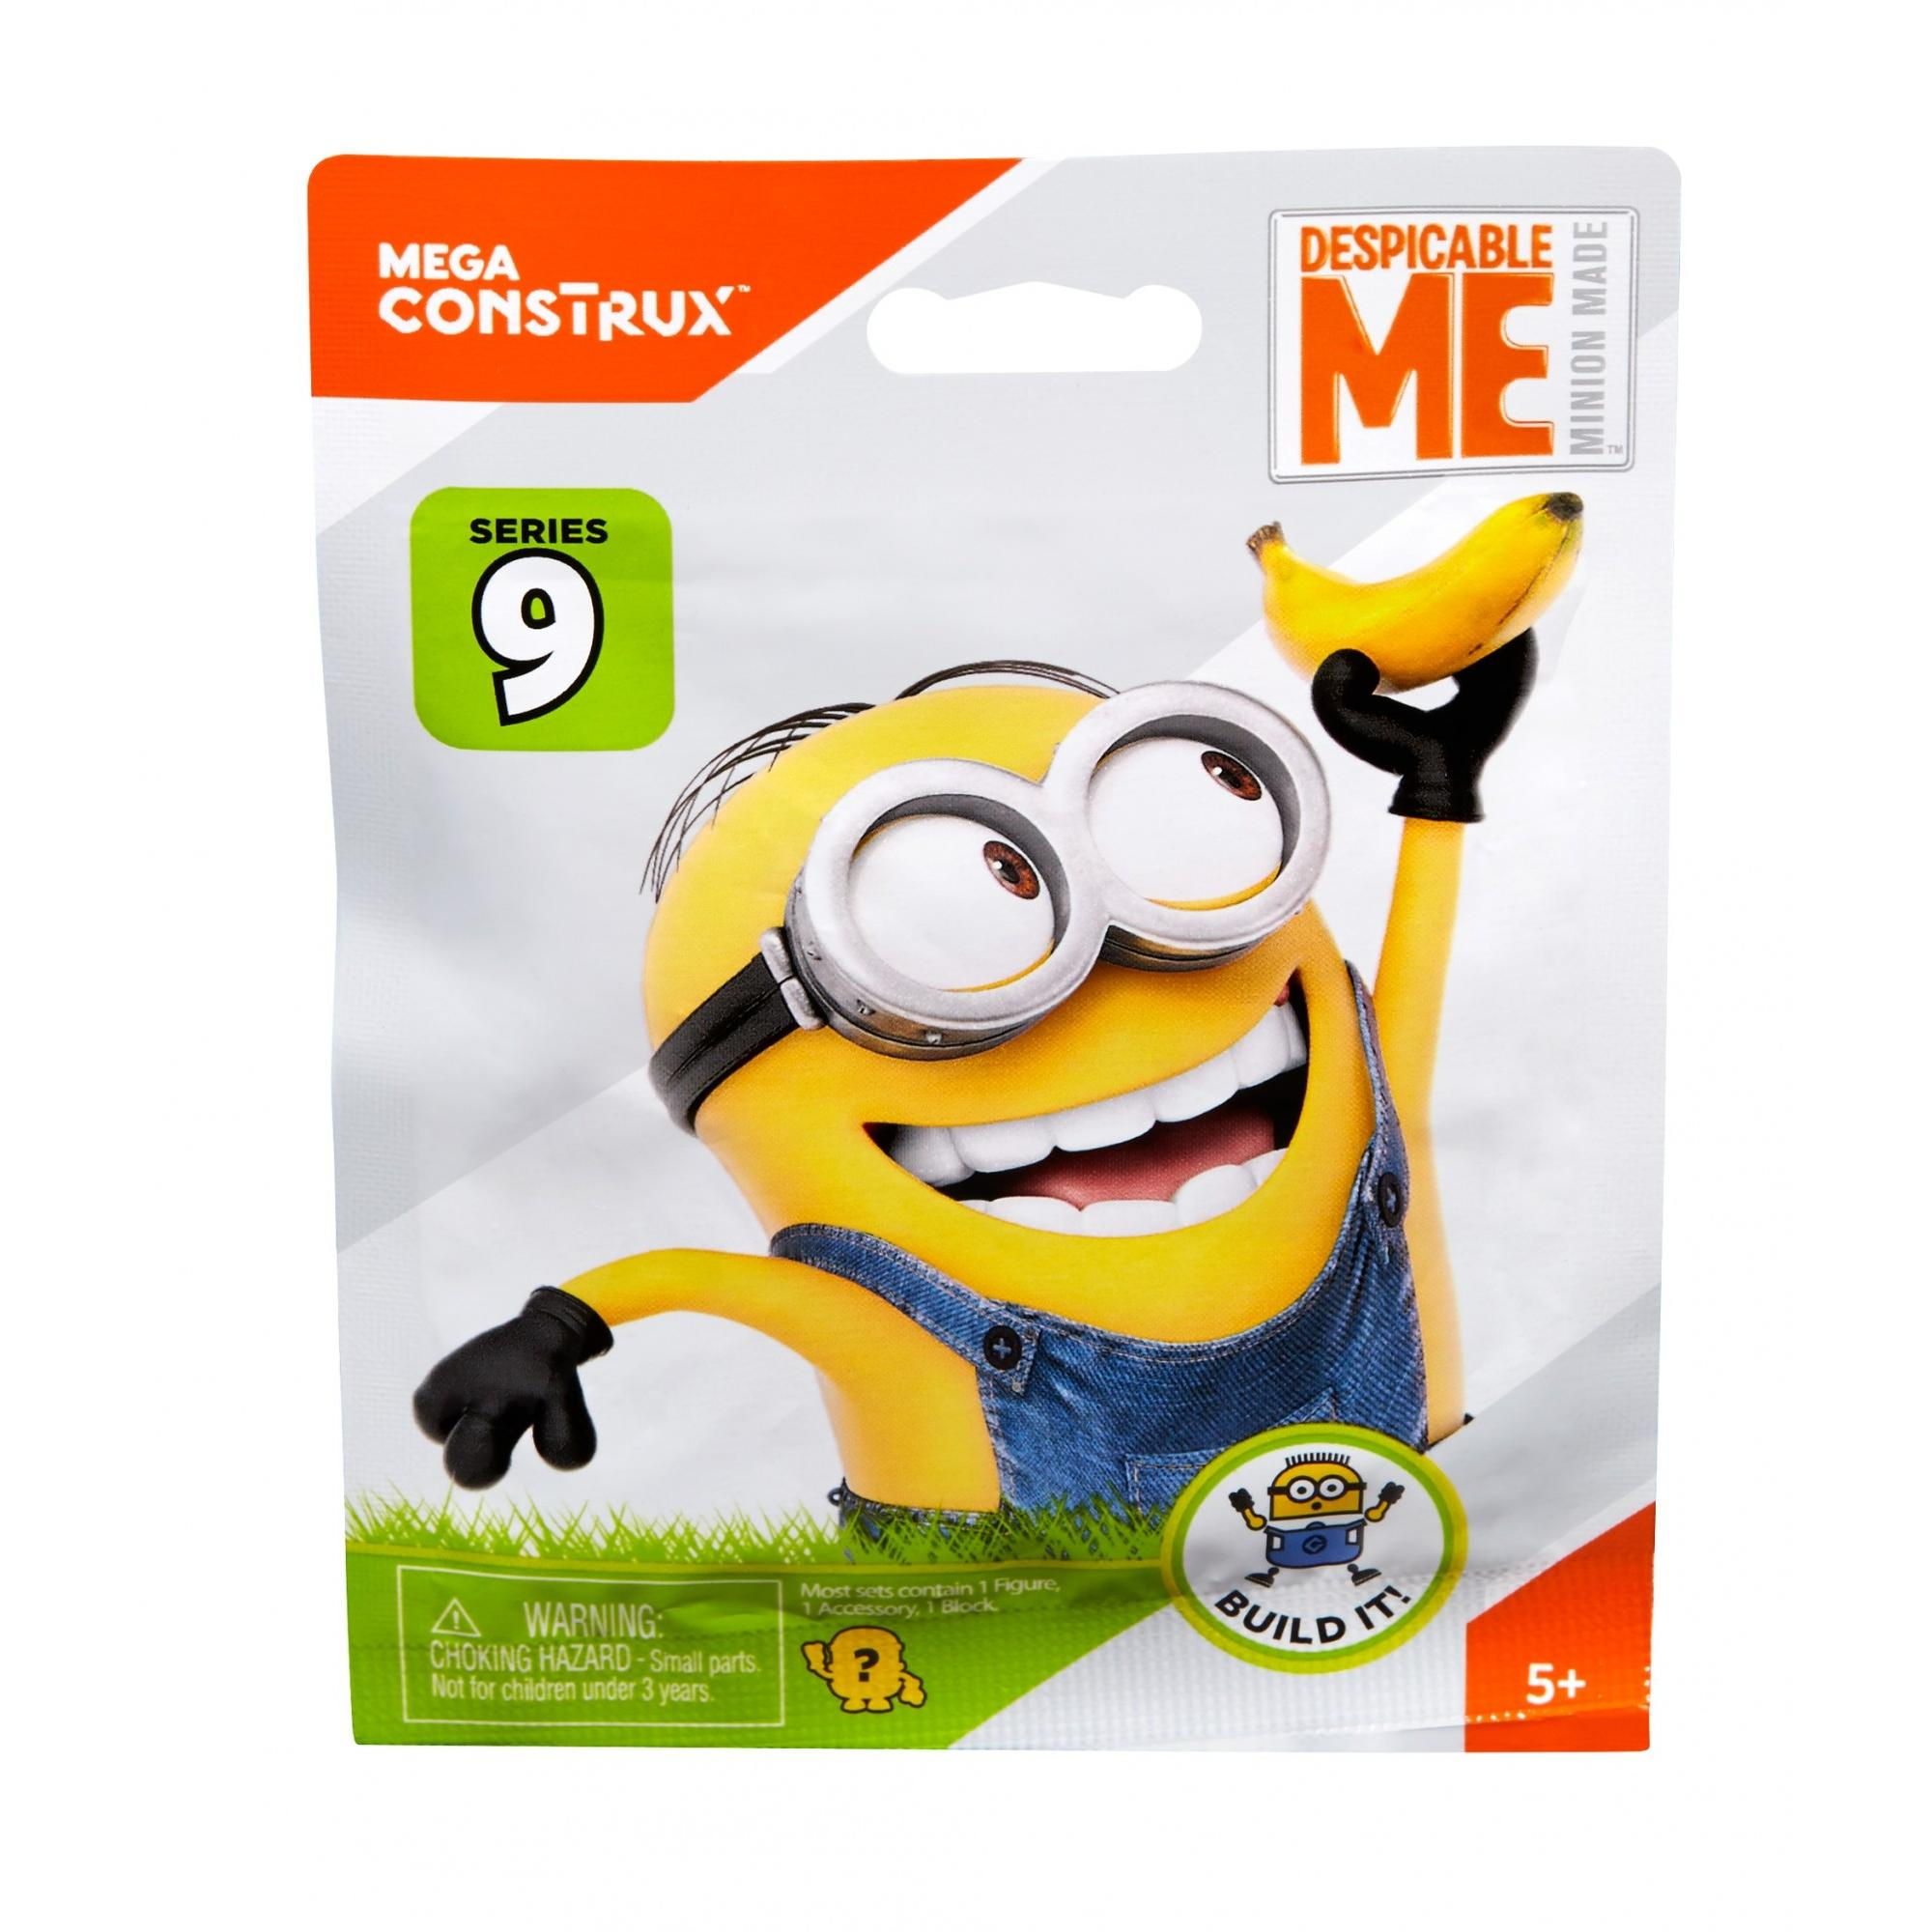 Mega Bloks Despicable Me Series 9 Blind Pack Moto Plan by Mega Bloks